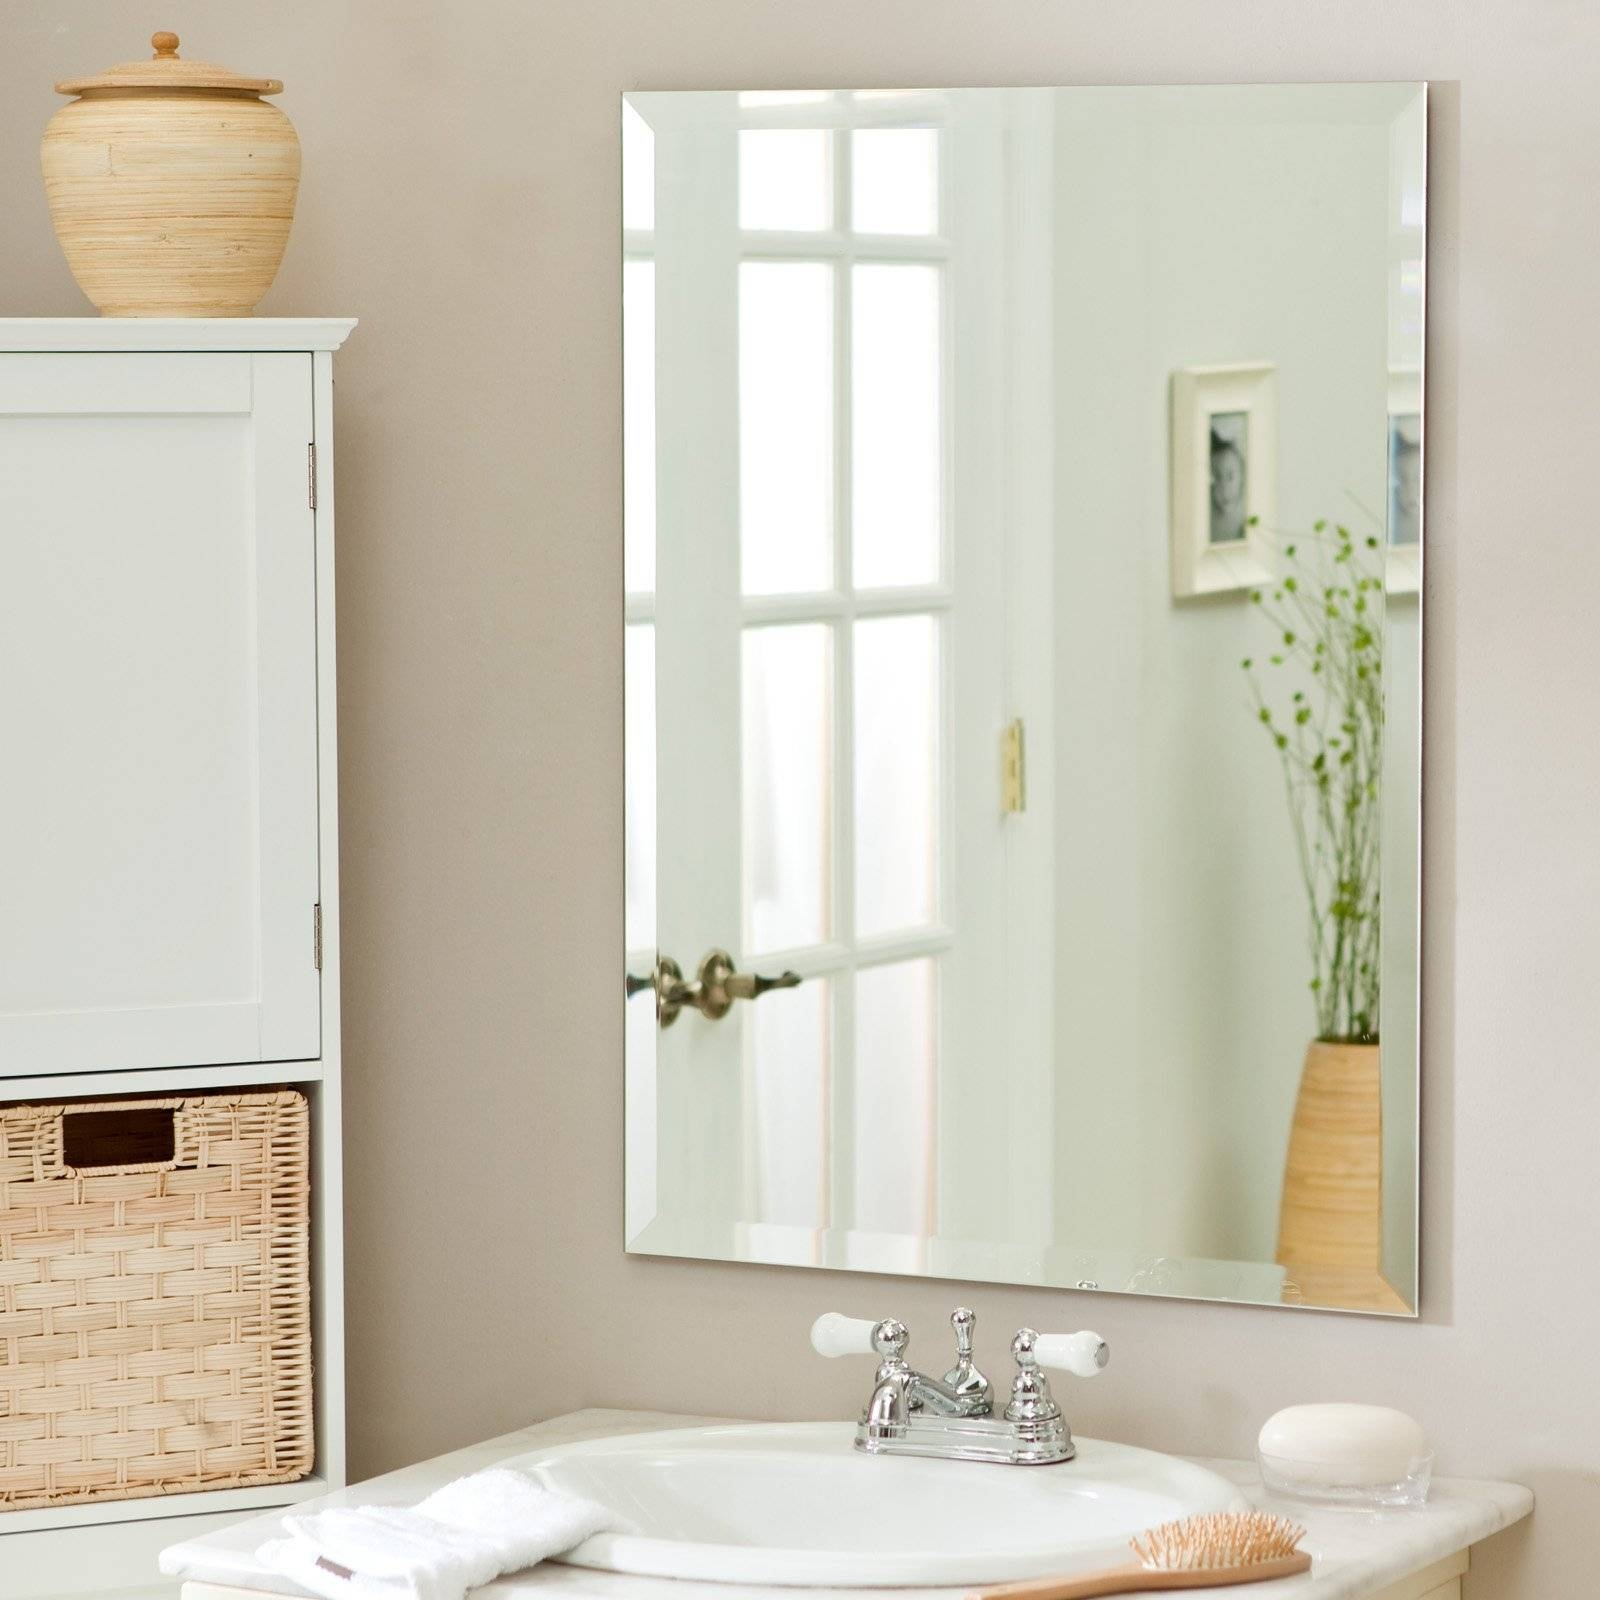 Bathroom : Amazing Beveled Bathroom Mirrors Frameless Decorations within Bevelled Bathroom Mirrors (Image 2 of 15)